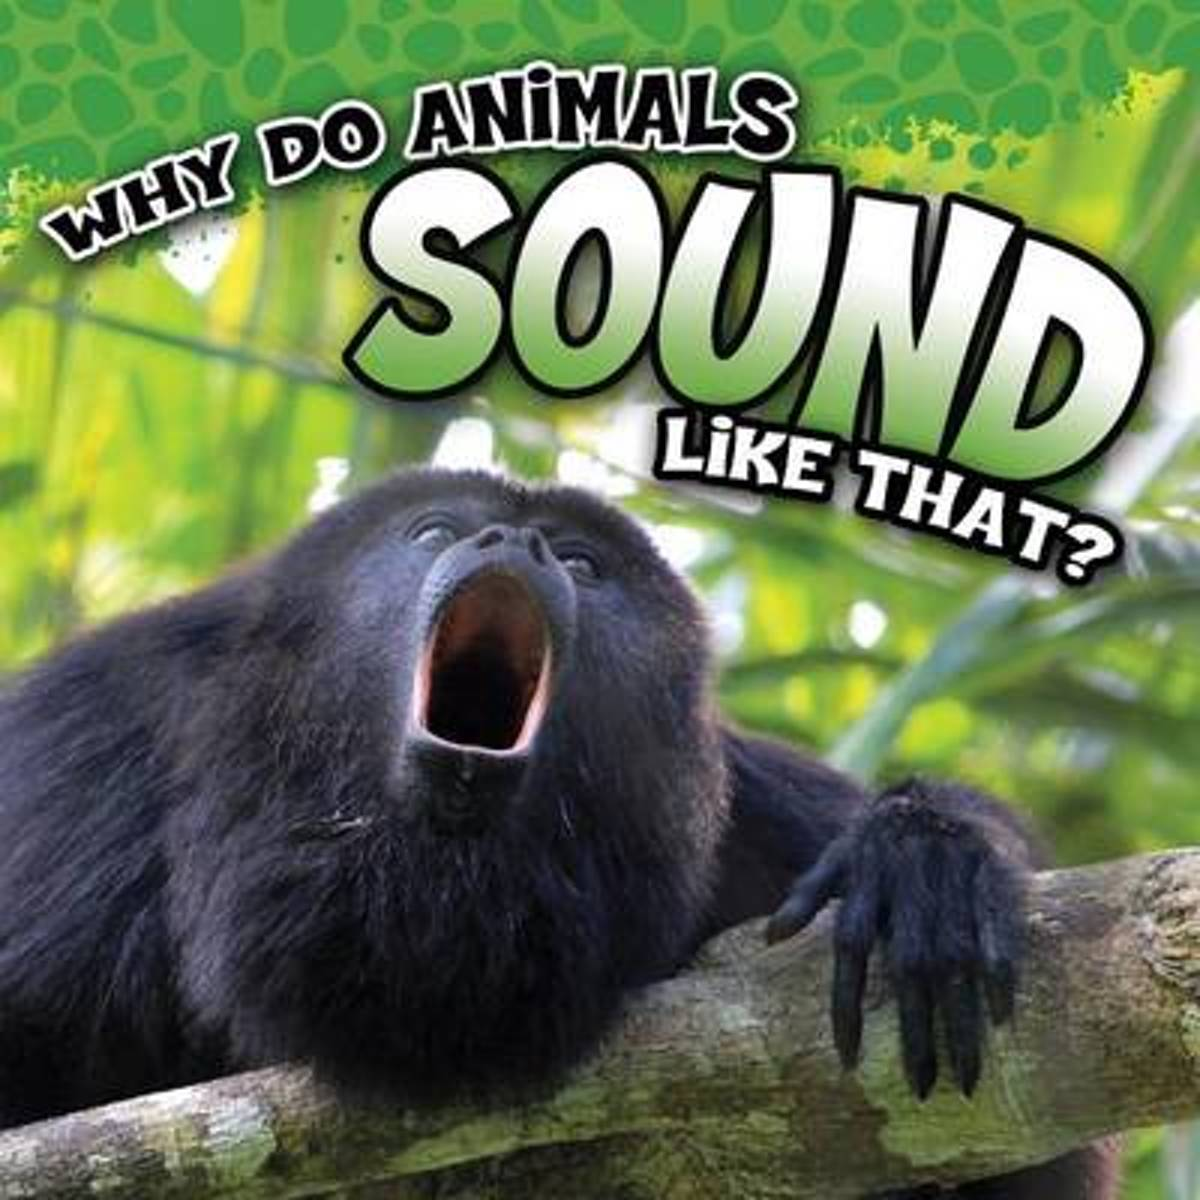 Why Do Animals Sound Like That?